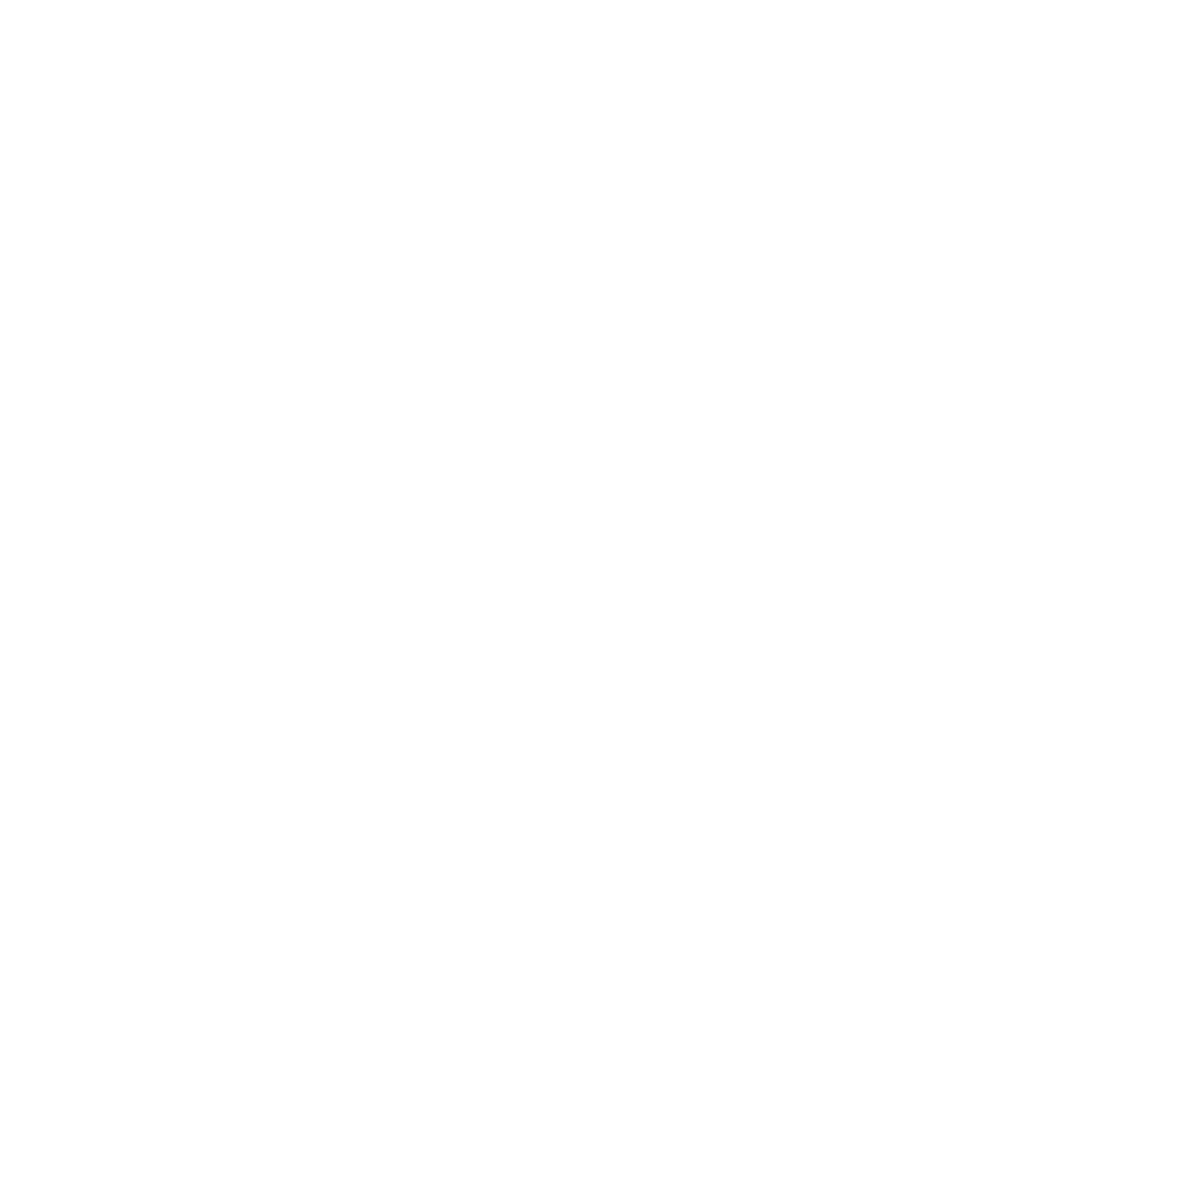 Expertise.com - Best Advertising Agencies in Fort Collins